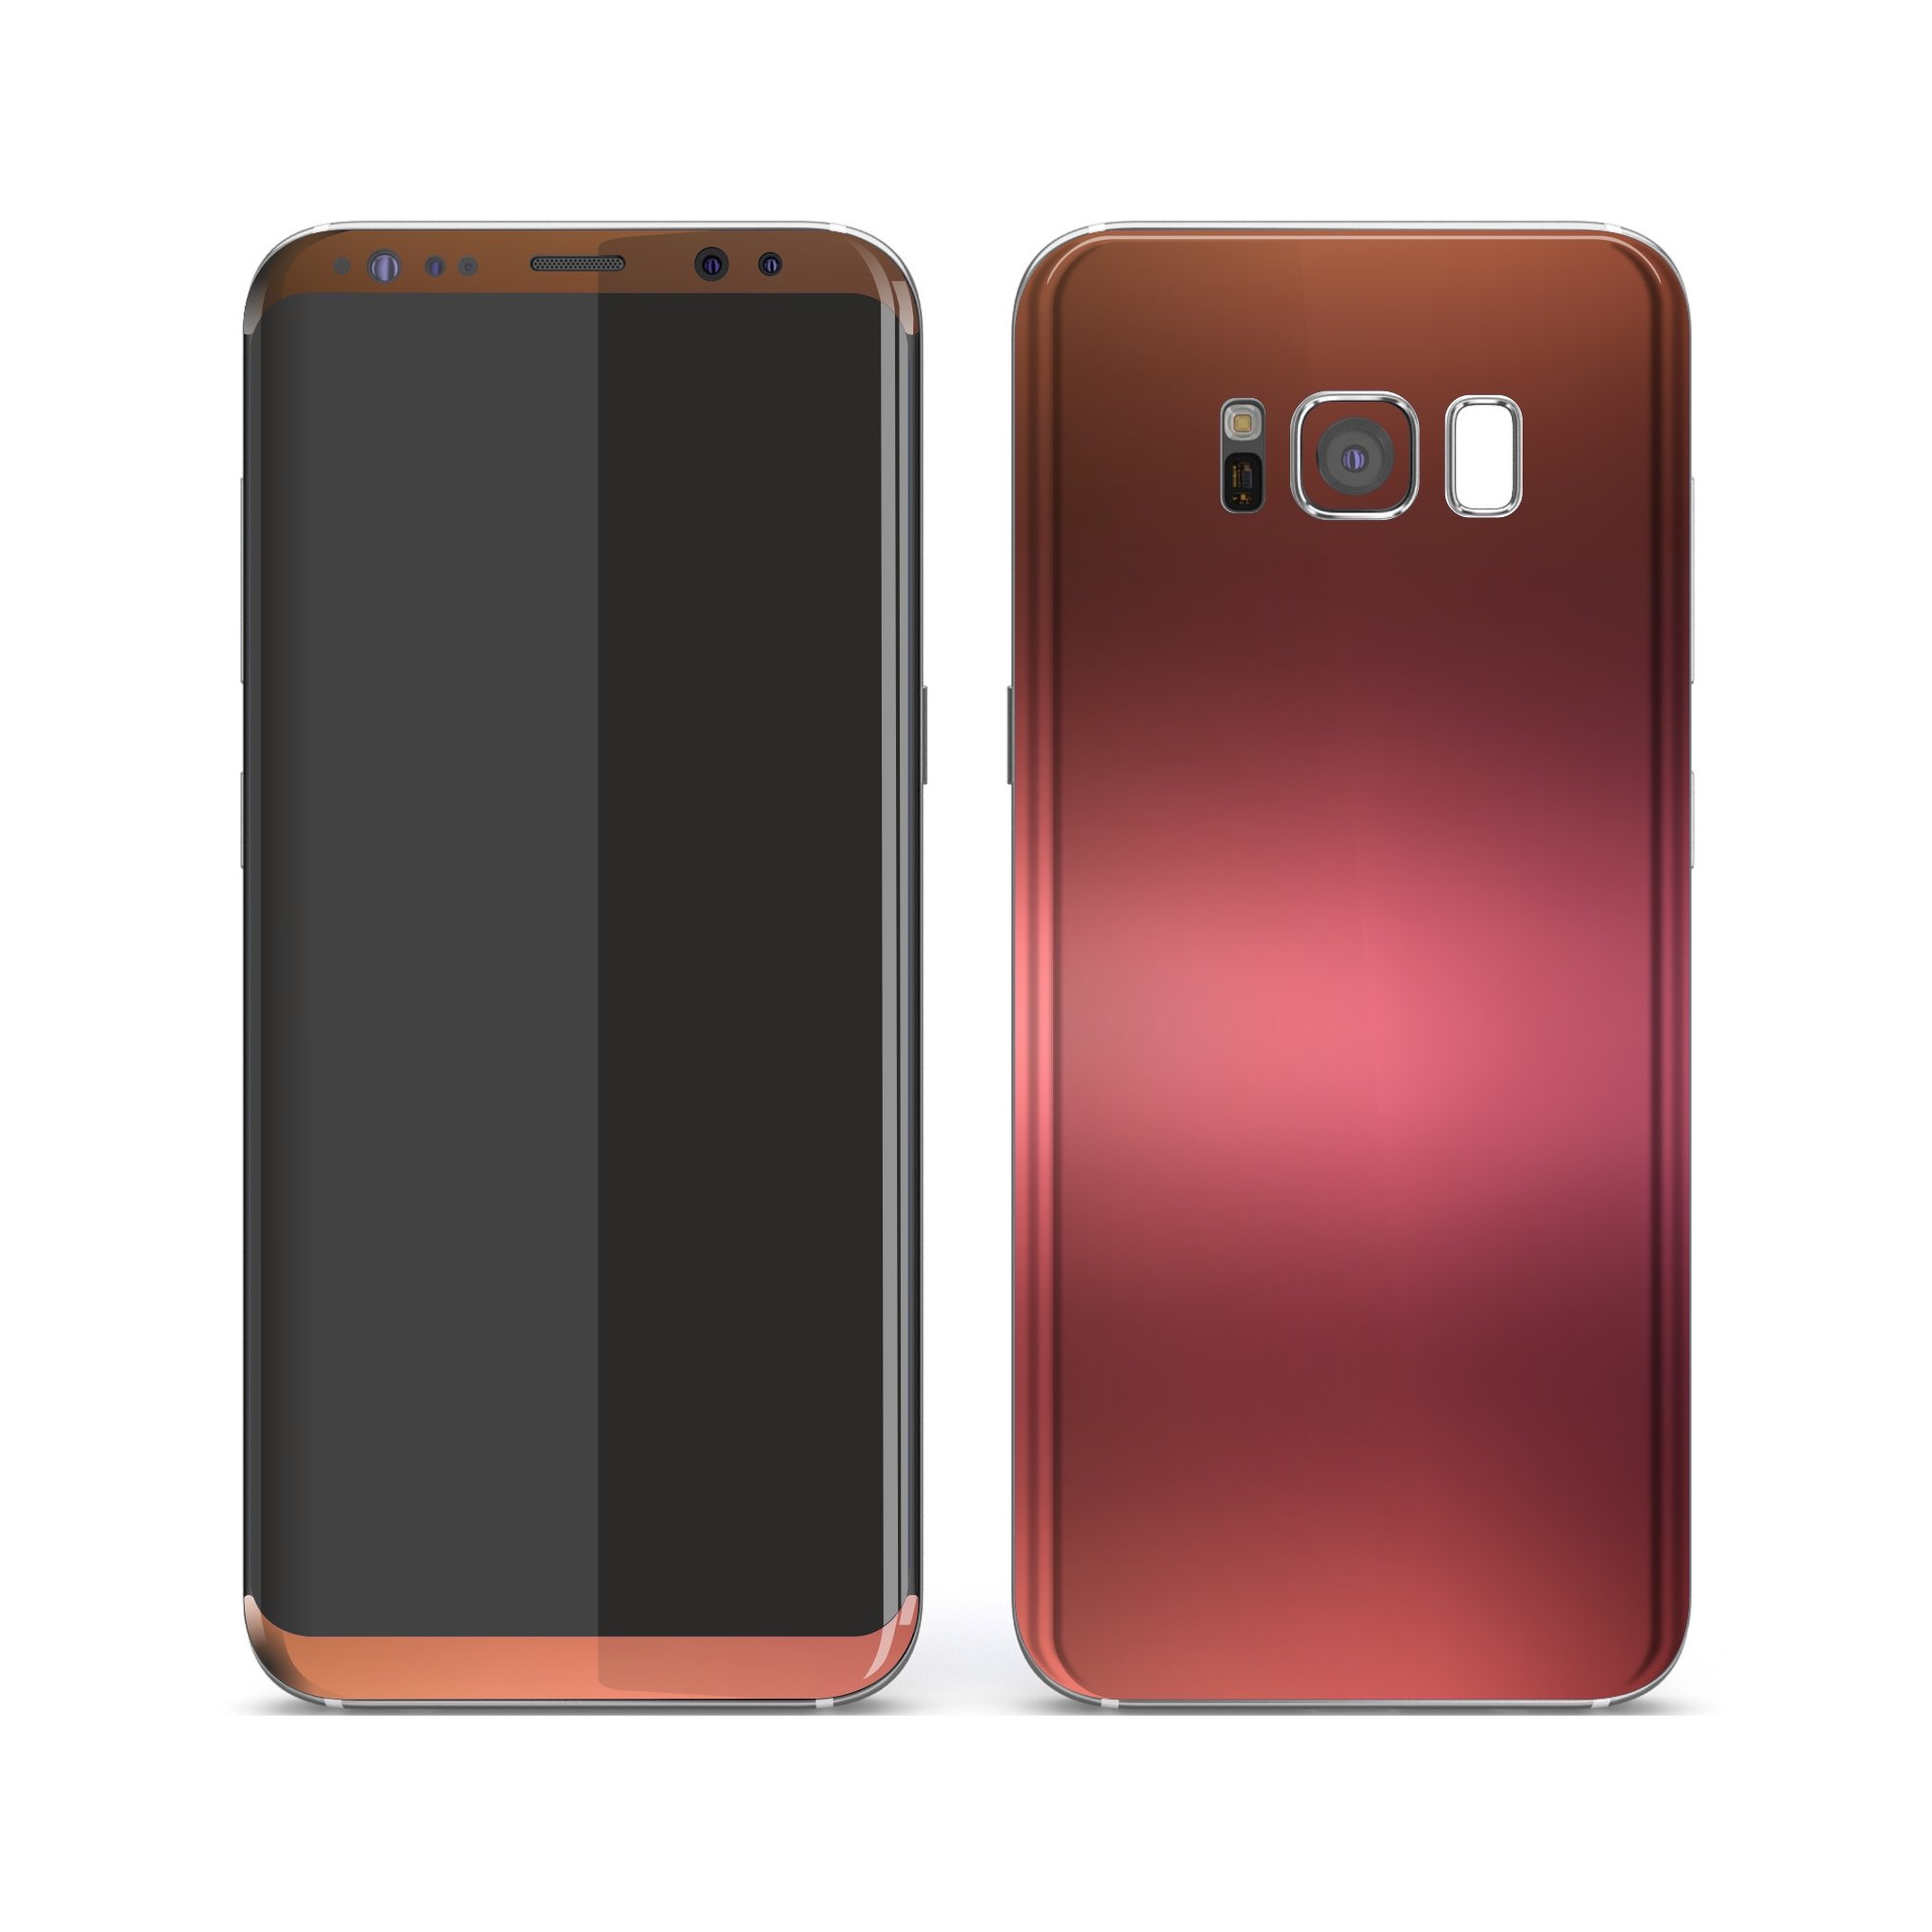 Samsung Galaxy S8+ Chameleon Aubergine Bronze Colour-Changing Skin, Decal, Wrap, Protector, Cover by EasySkinz | EasySkinz.com